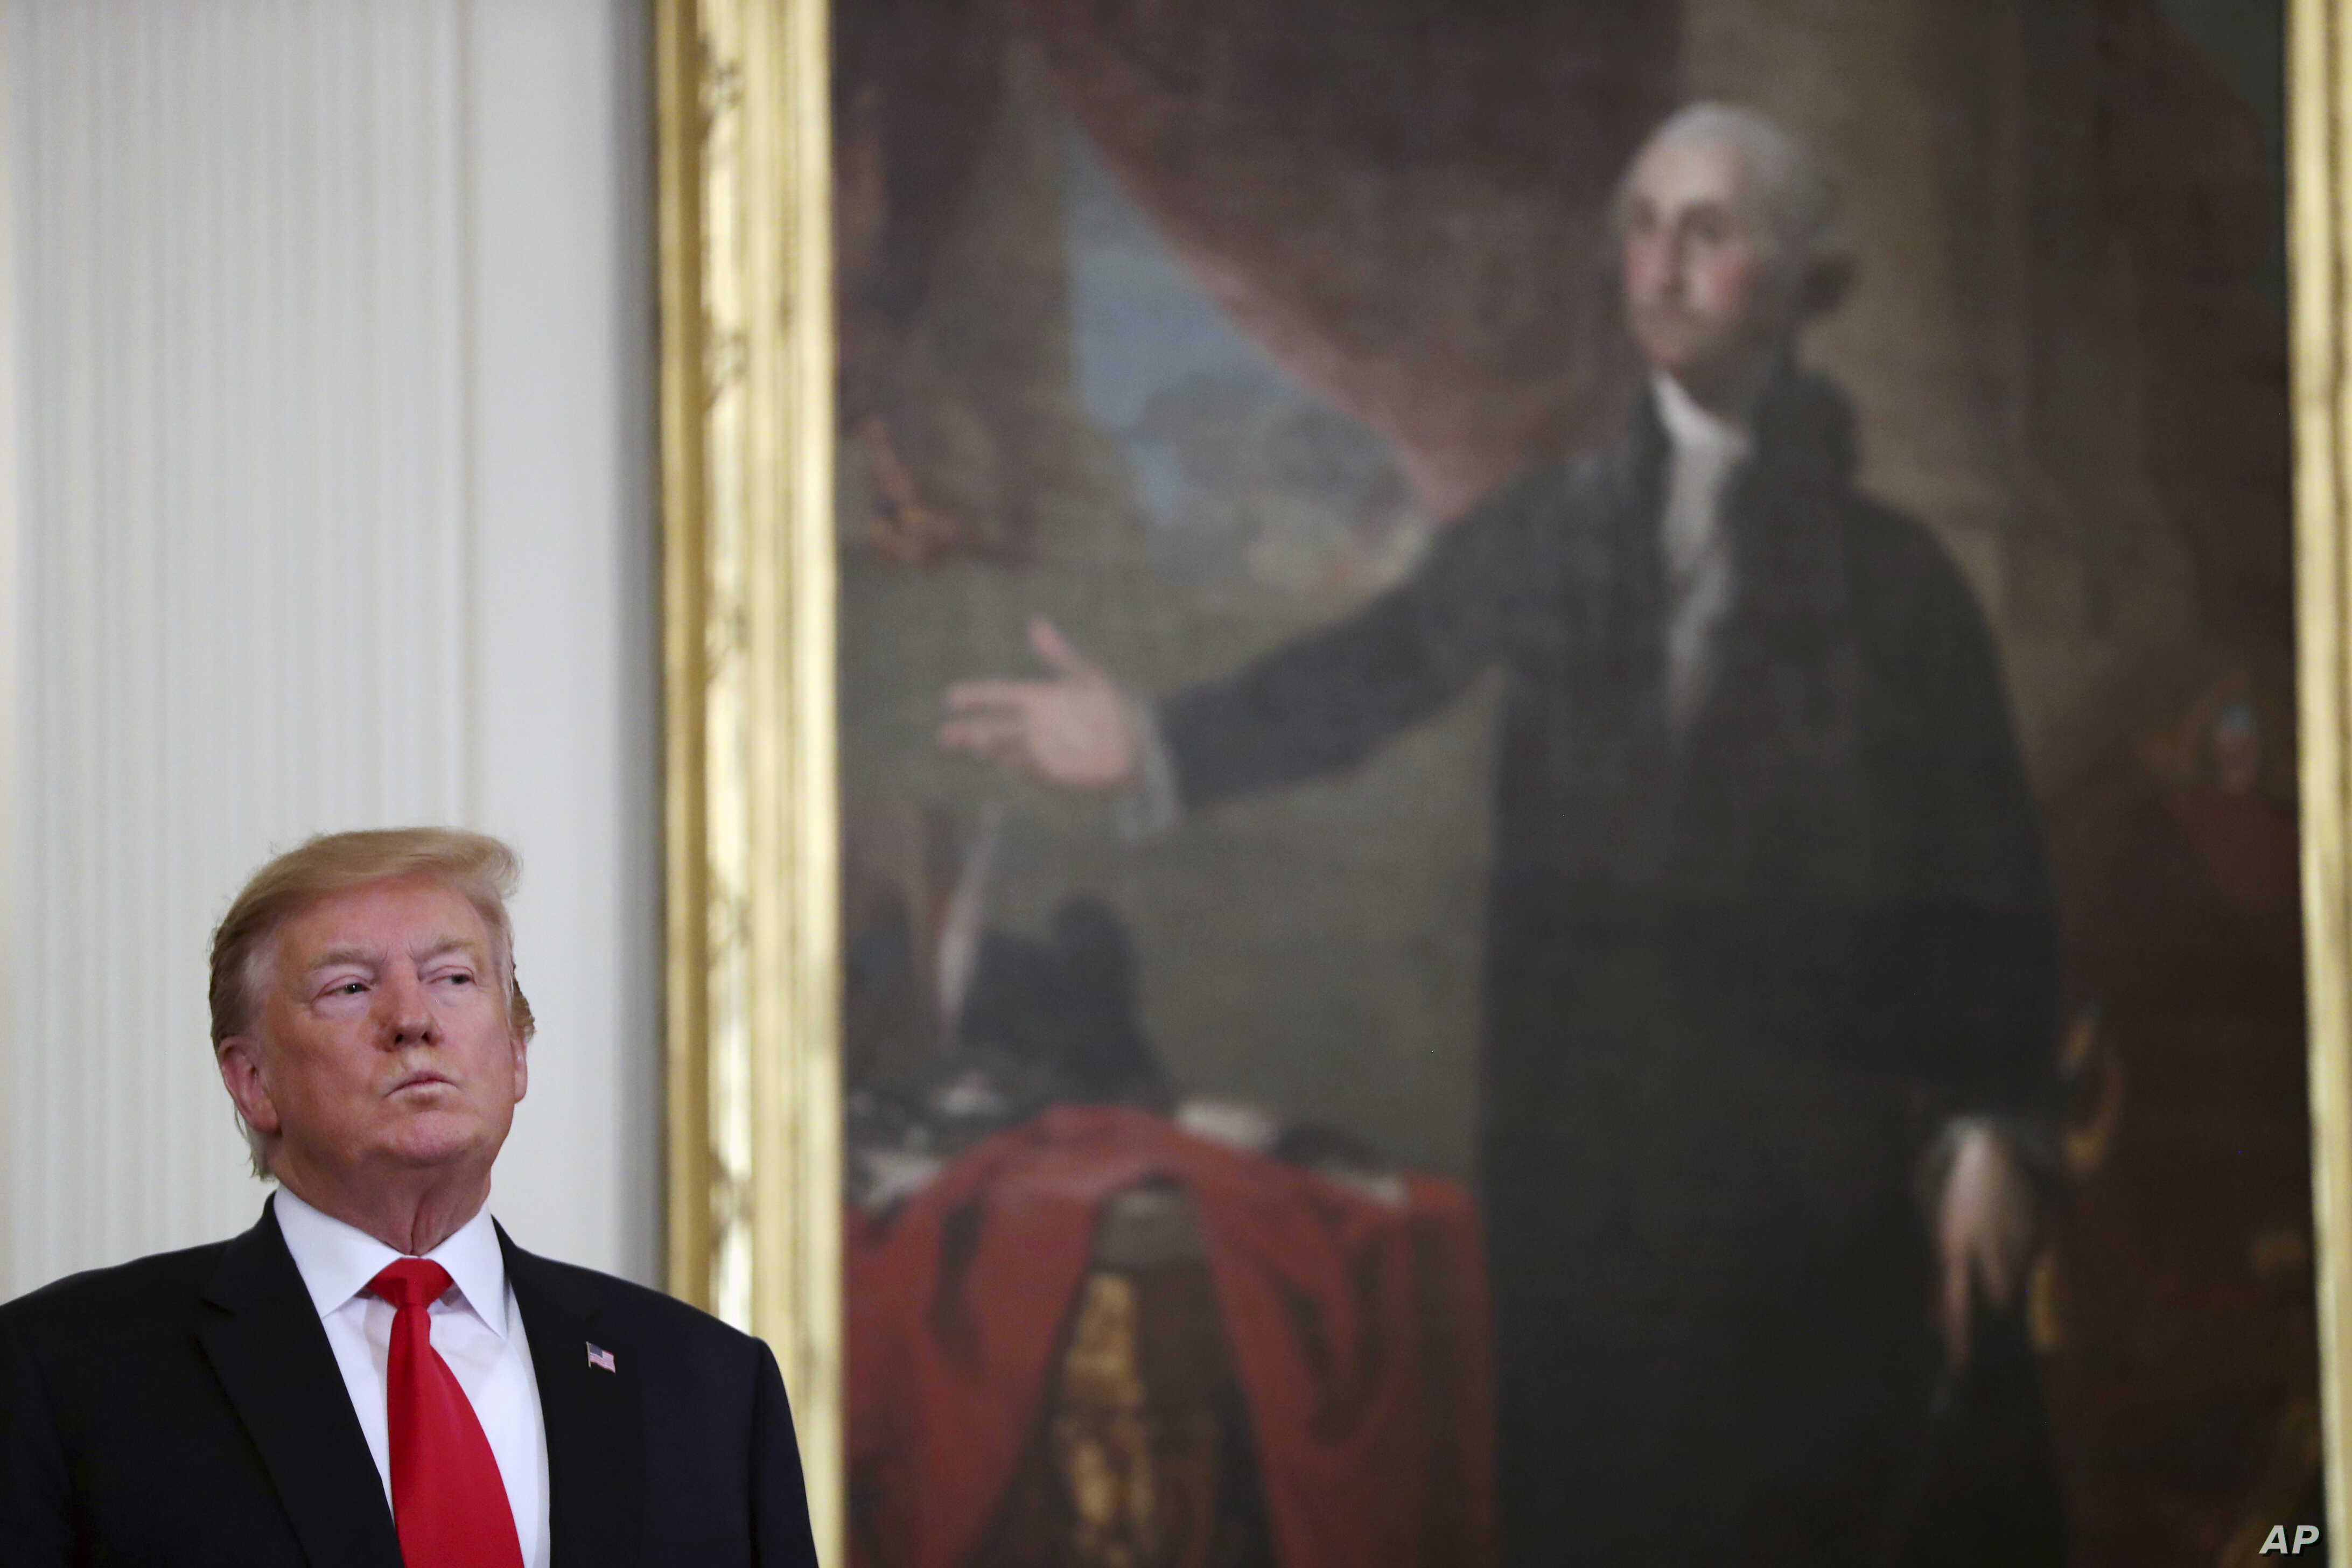 FILE - President Donald Trump stands near a portrait of George Washington in the East Room of the White House, April 18, 2019, in Washington.